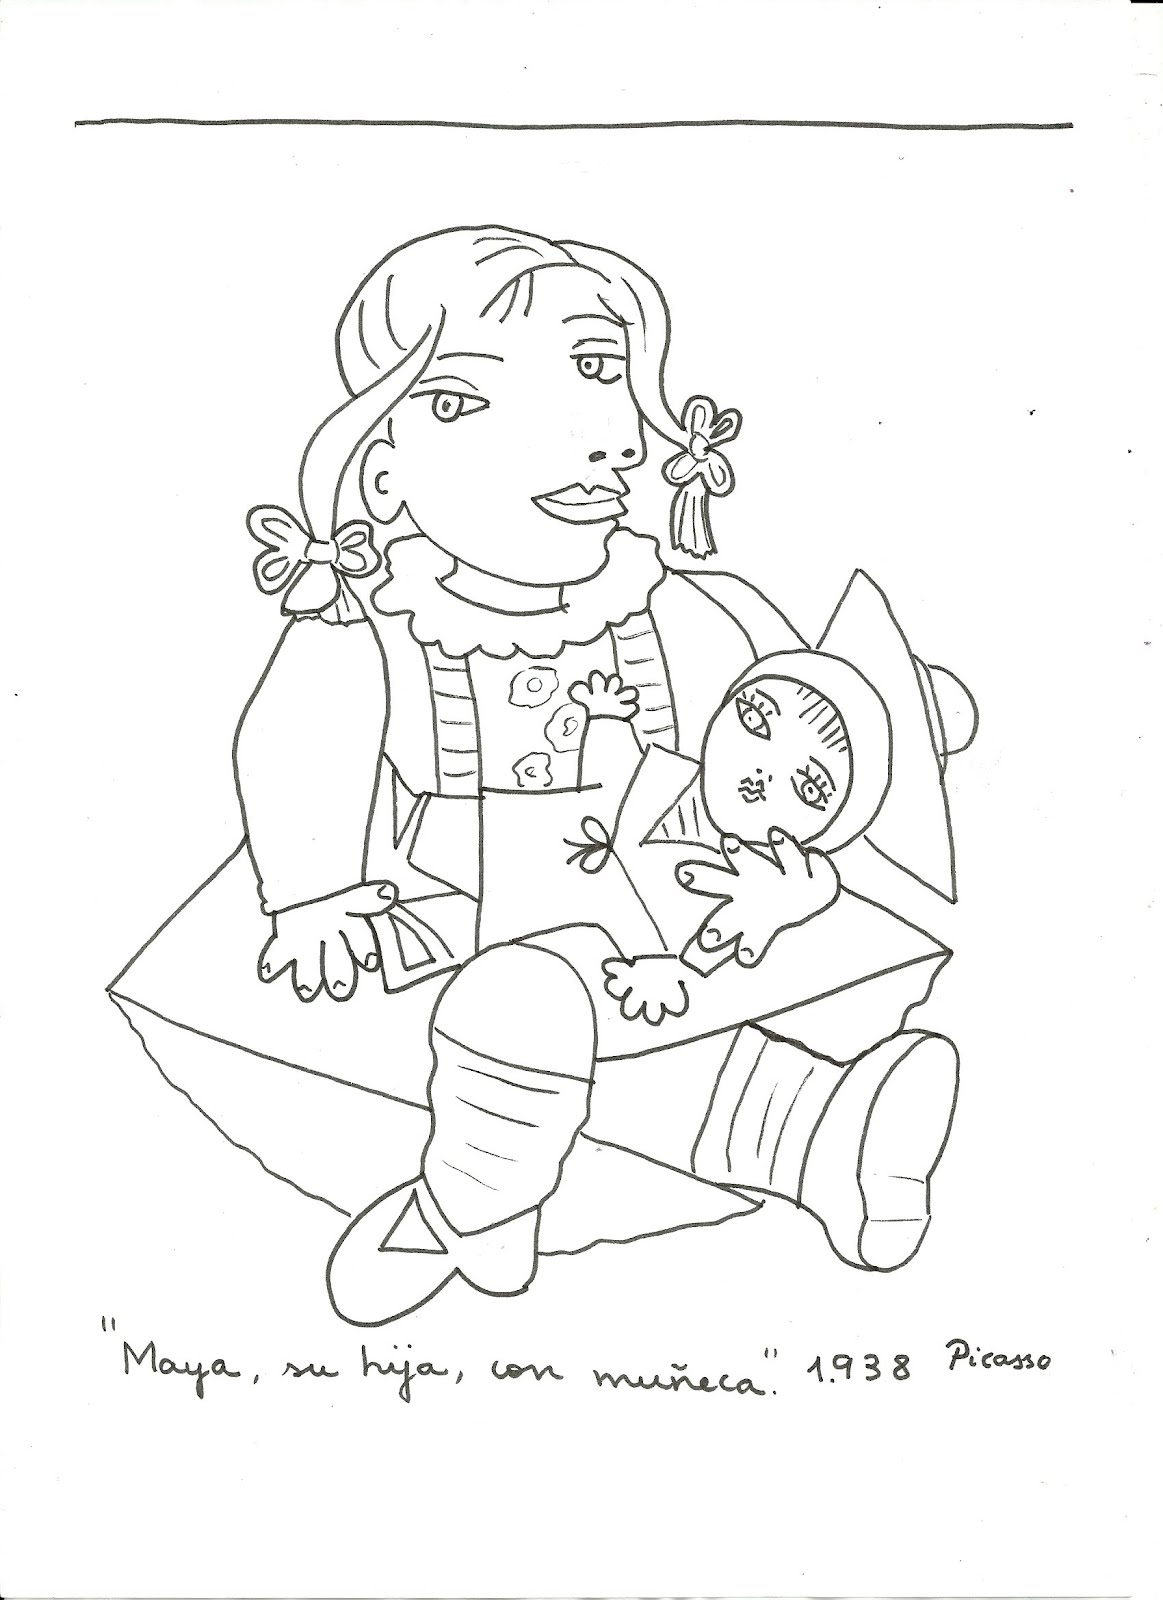 ecclesiastes 3 1 coloring pages - photo#25